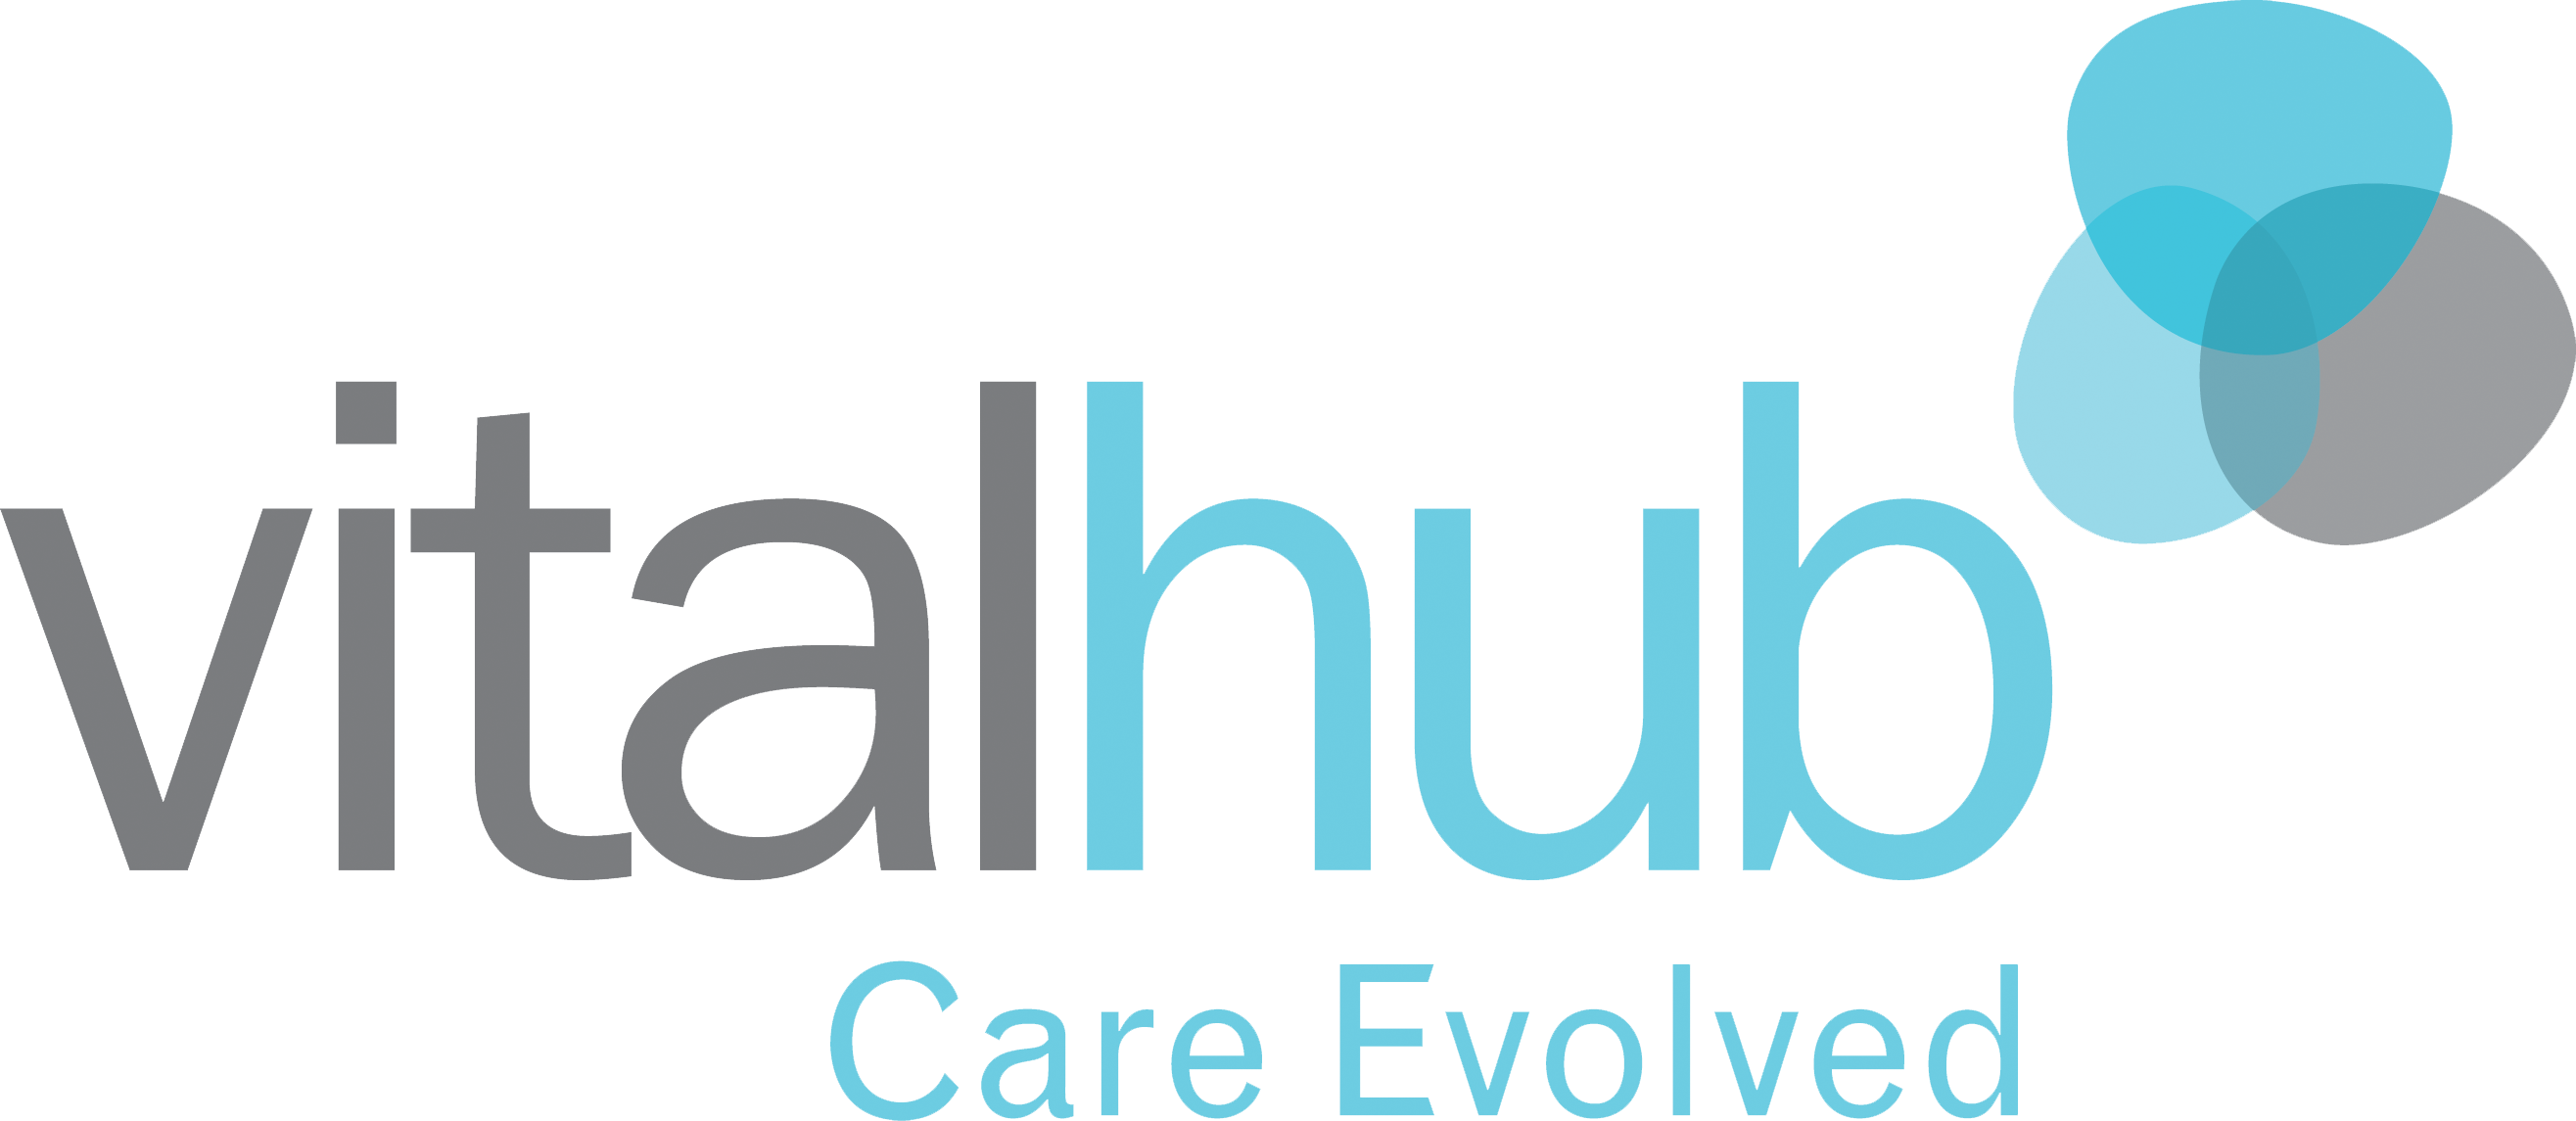 VitalHub Announces Licensing Deal with Harrogate and District NHS Foundation Trust